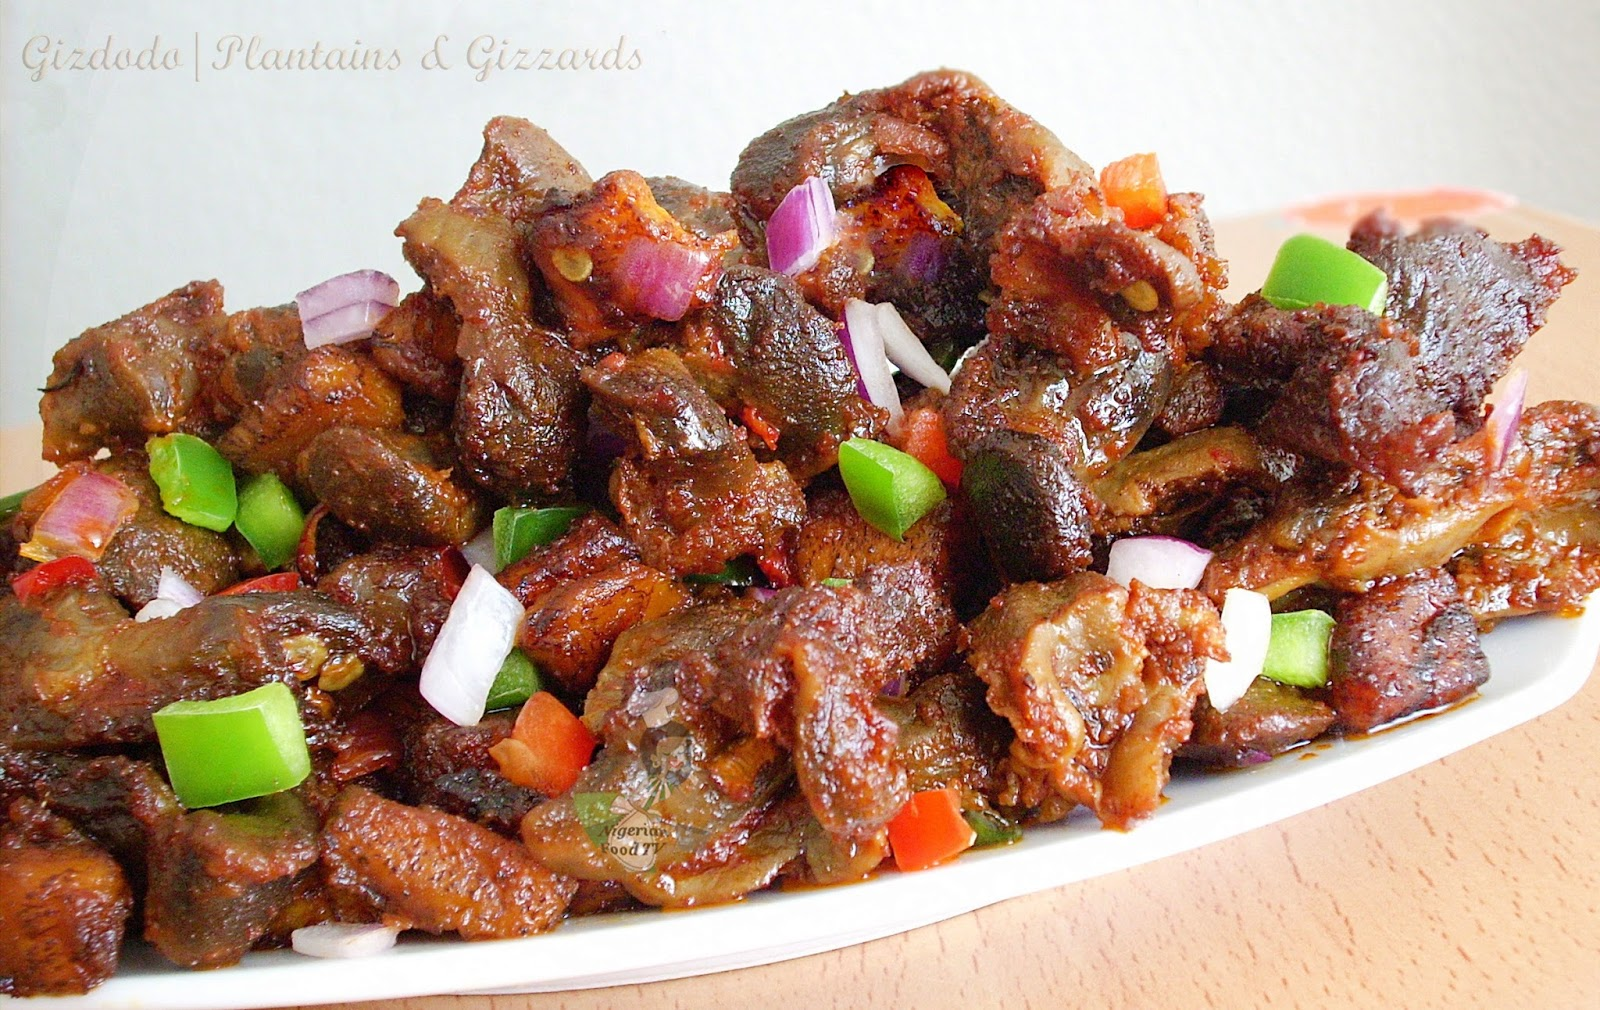 Popular nigerian christmas food recipes xmas food snacks nigerian food recipes gizdodo recipe gizzards and plantainsnigerian recipes dodo gizzards forumfinder Gallery